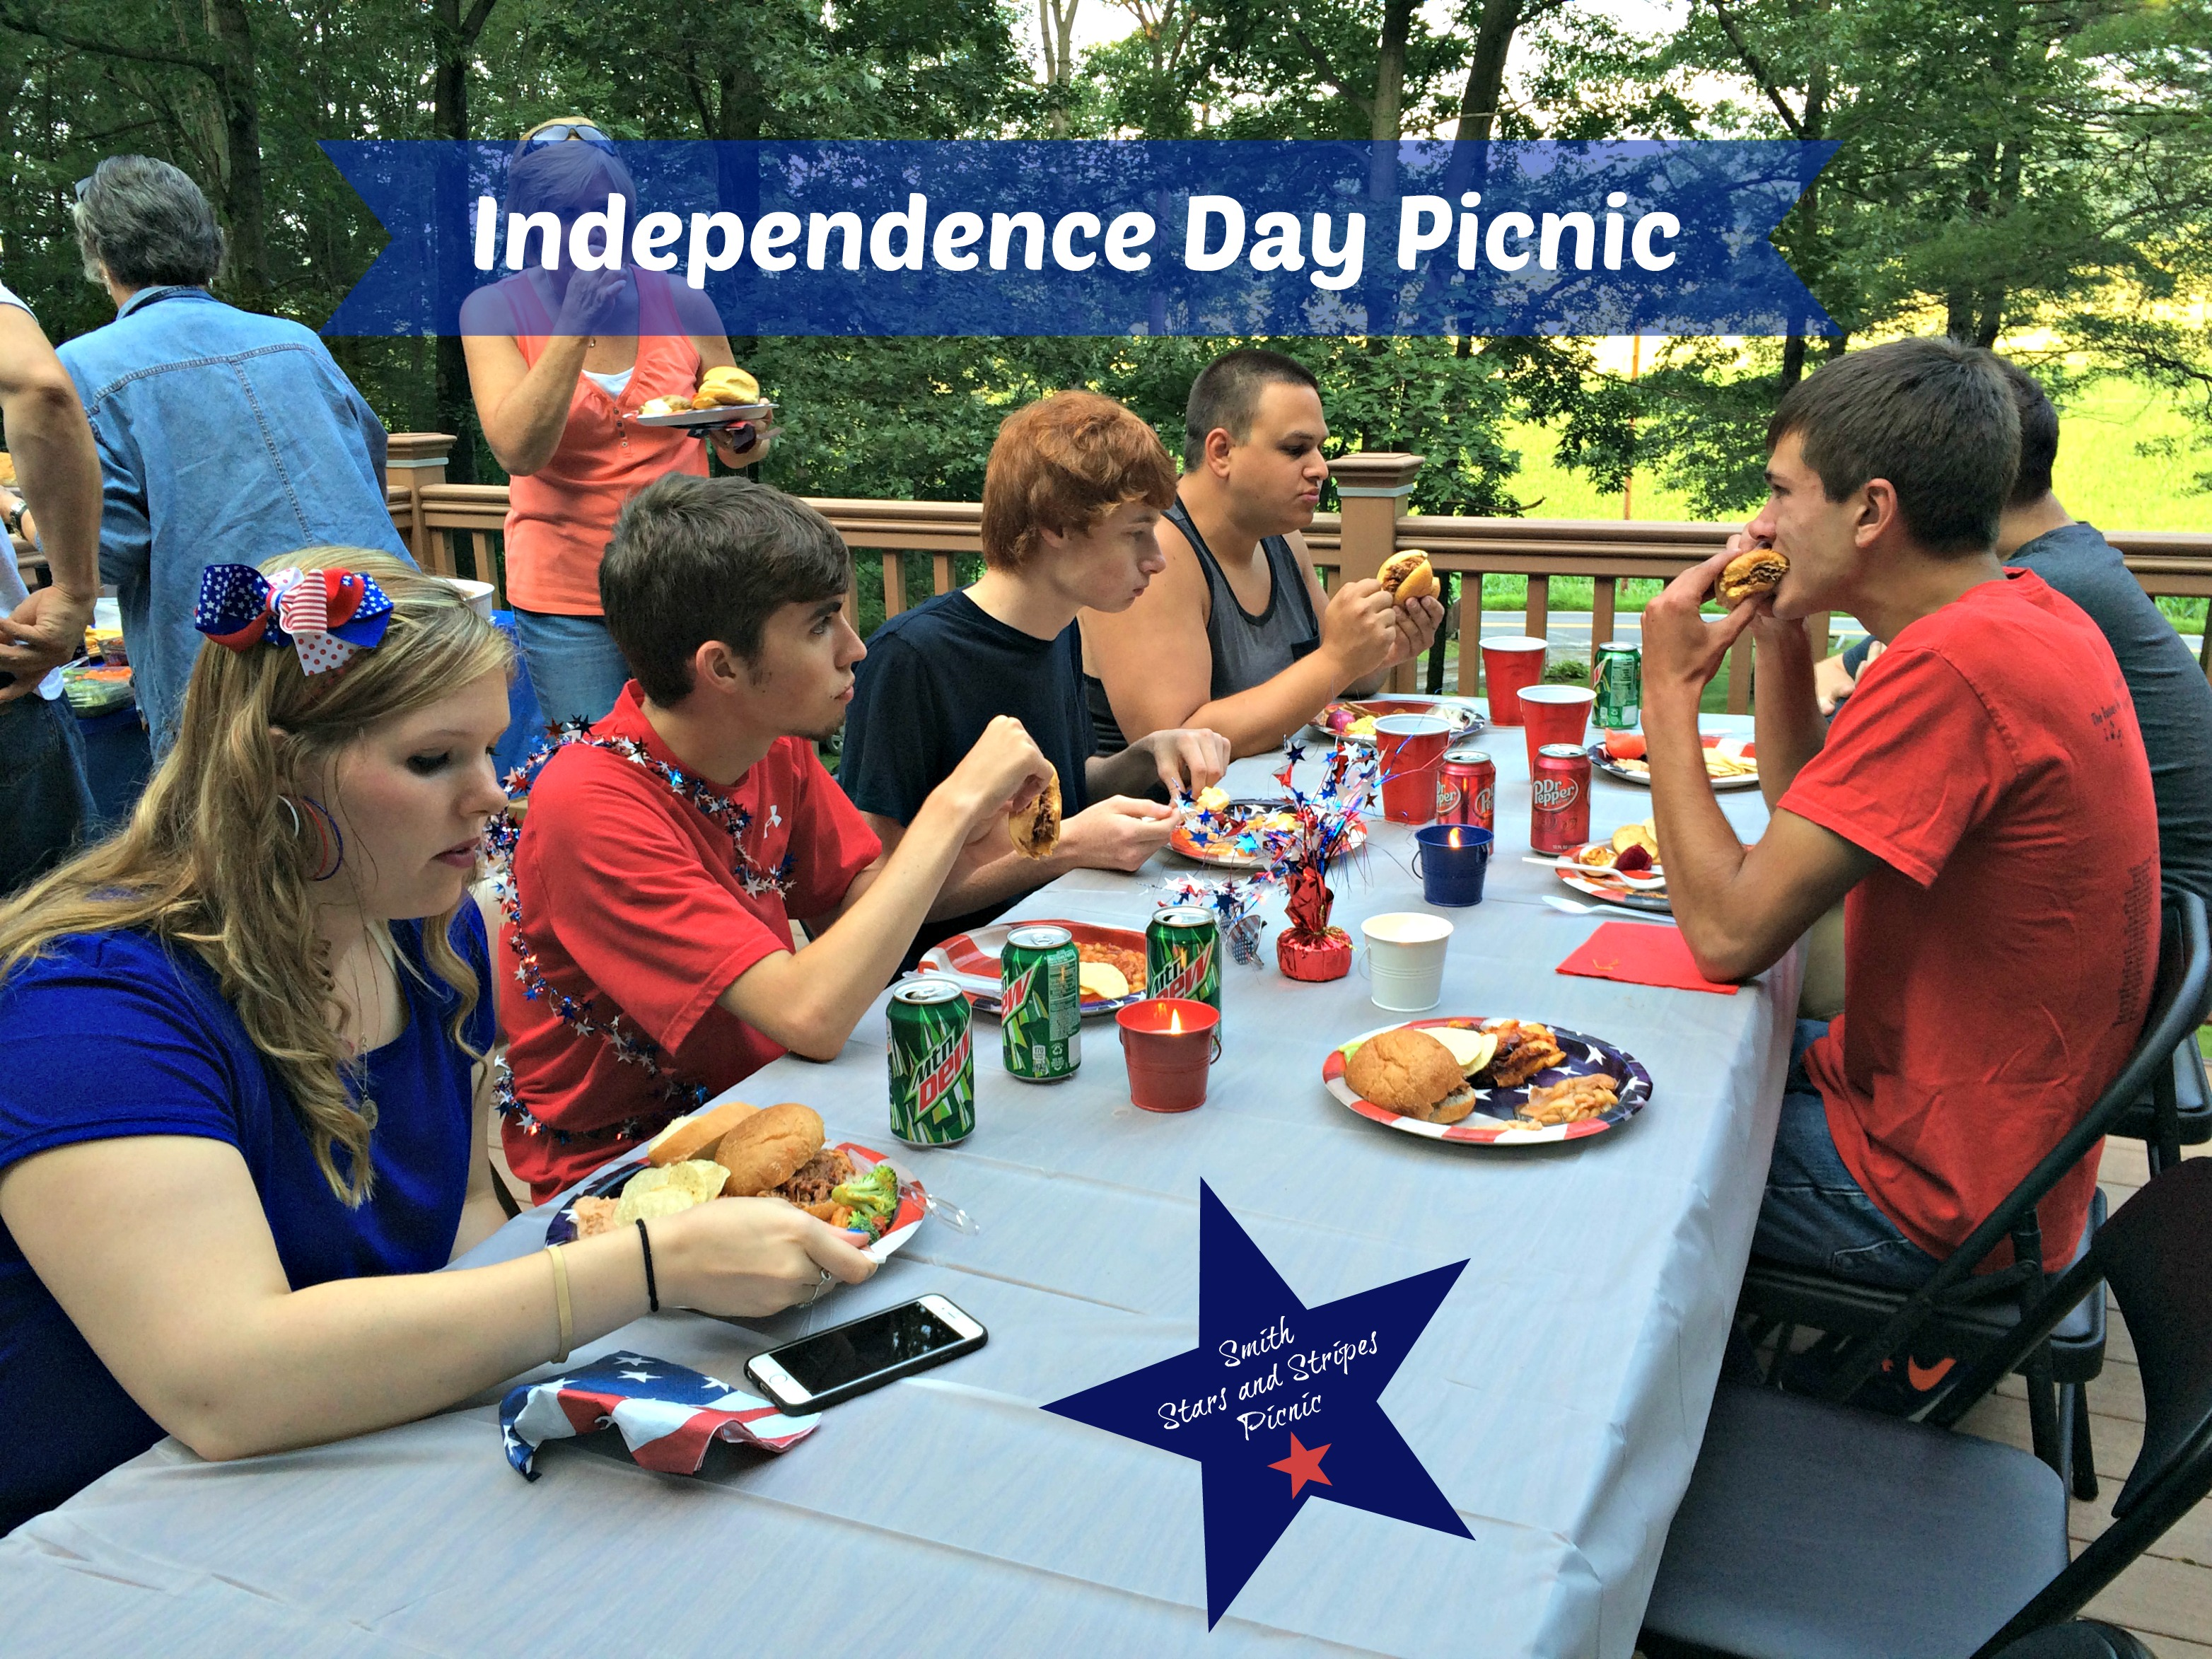 Independence Day Picnic